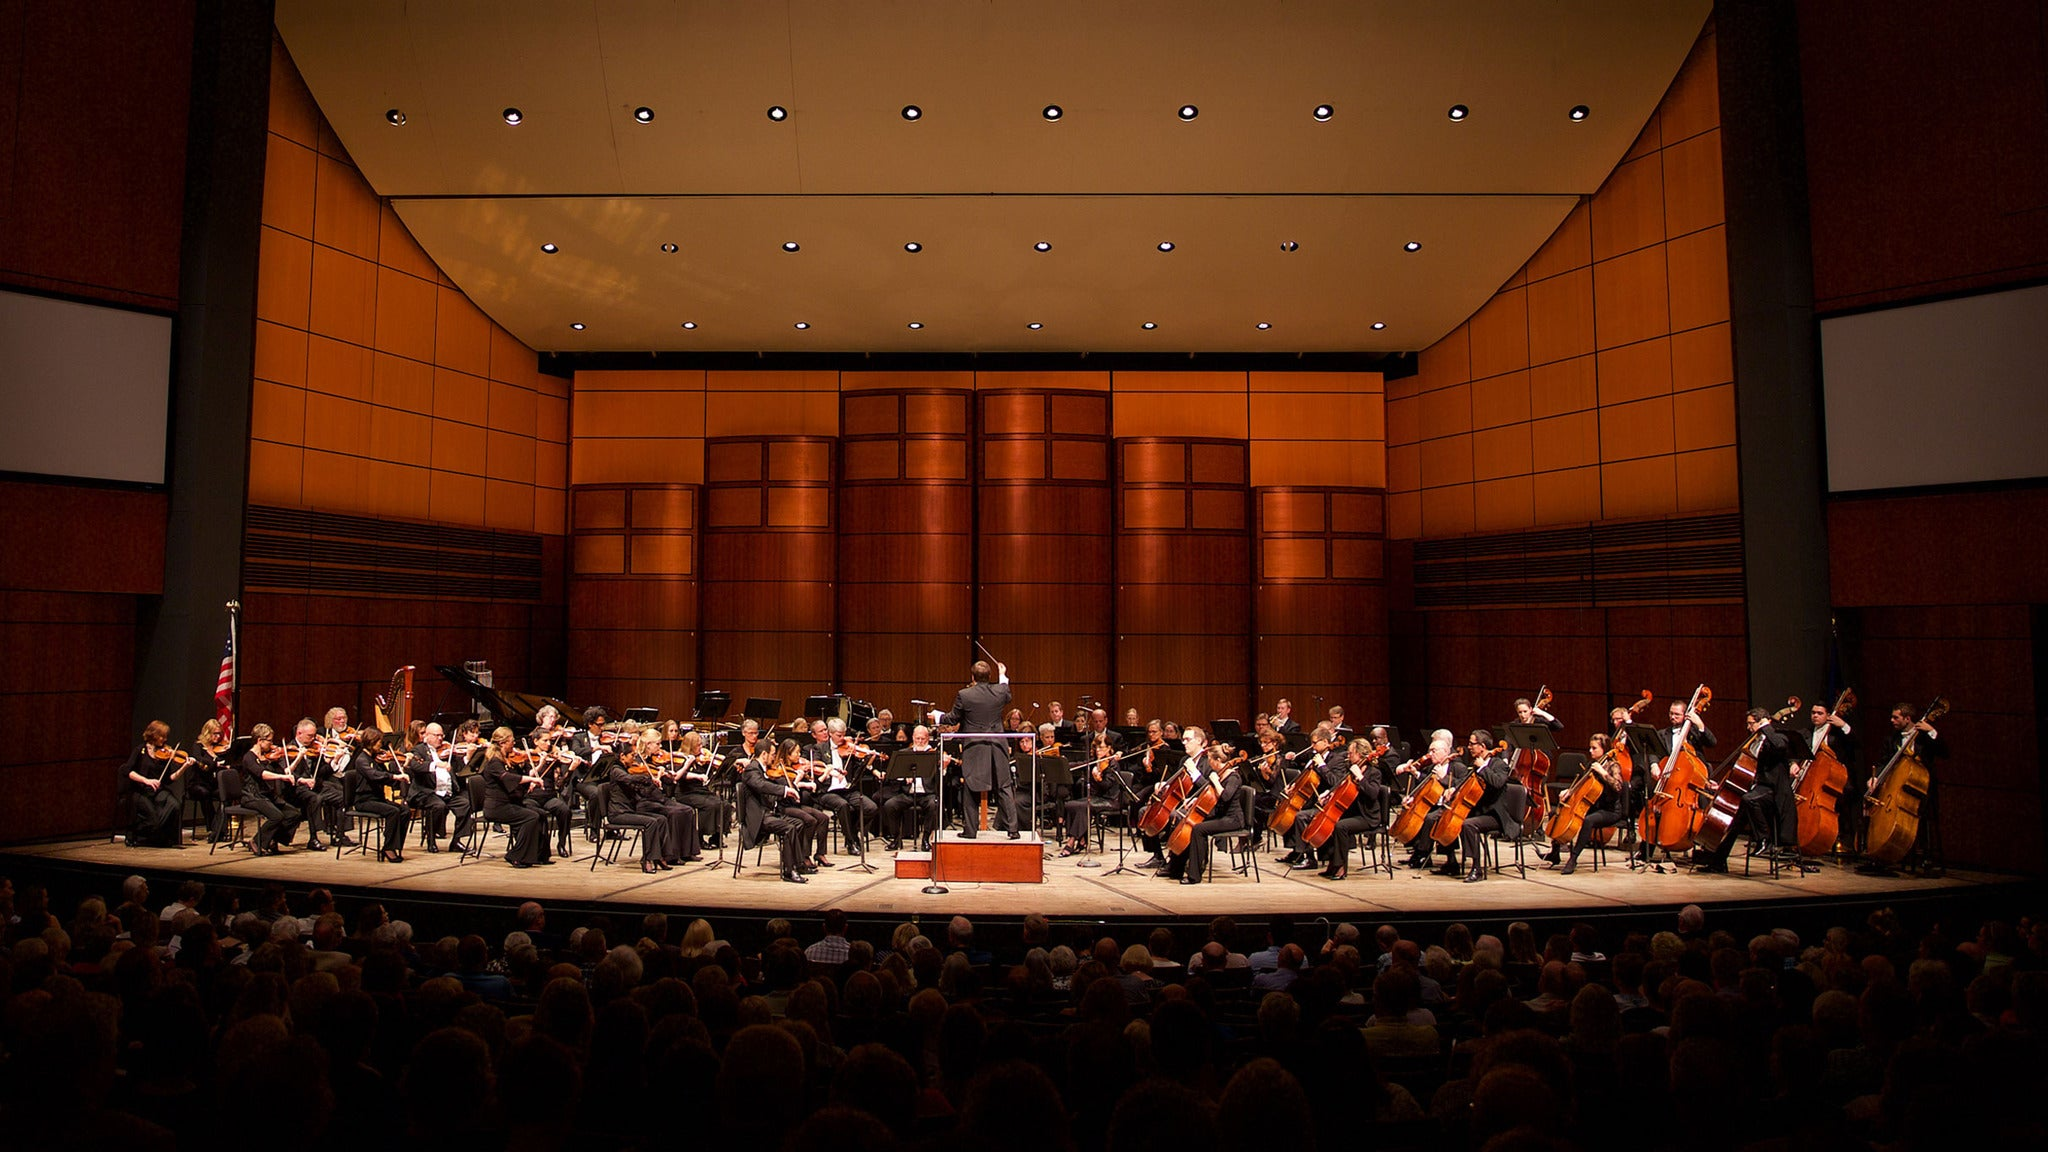 Grand Rapids Symphony: Rhythm of the Dance